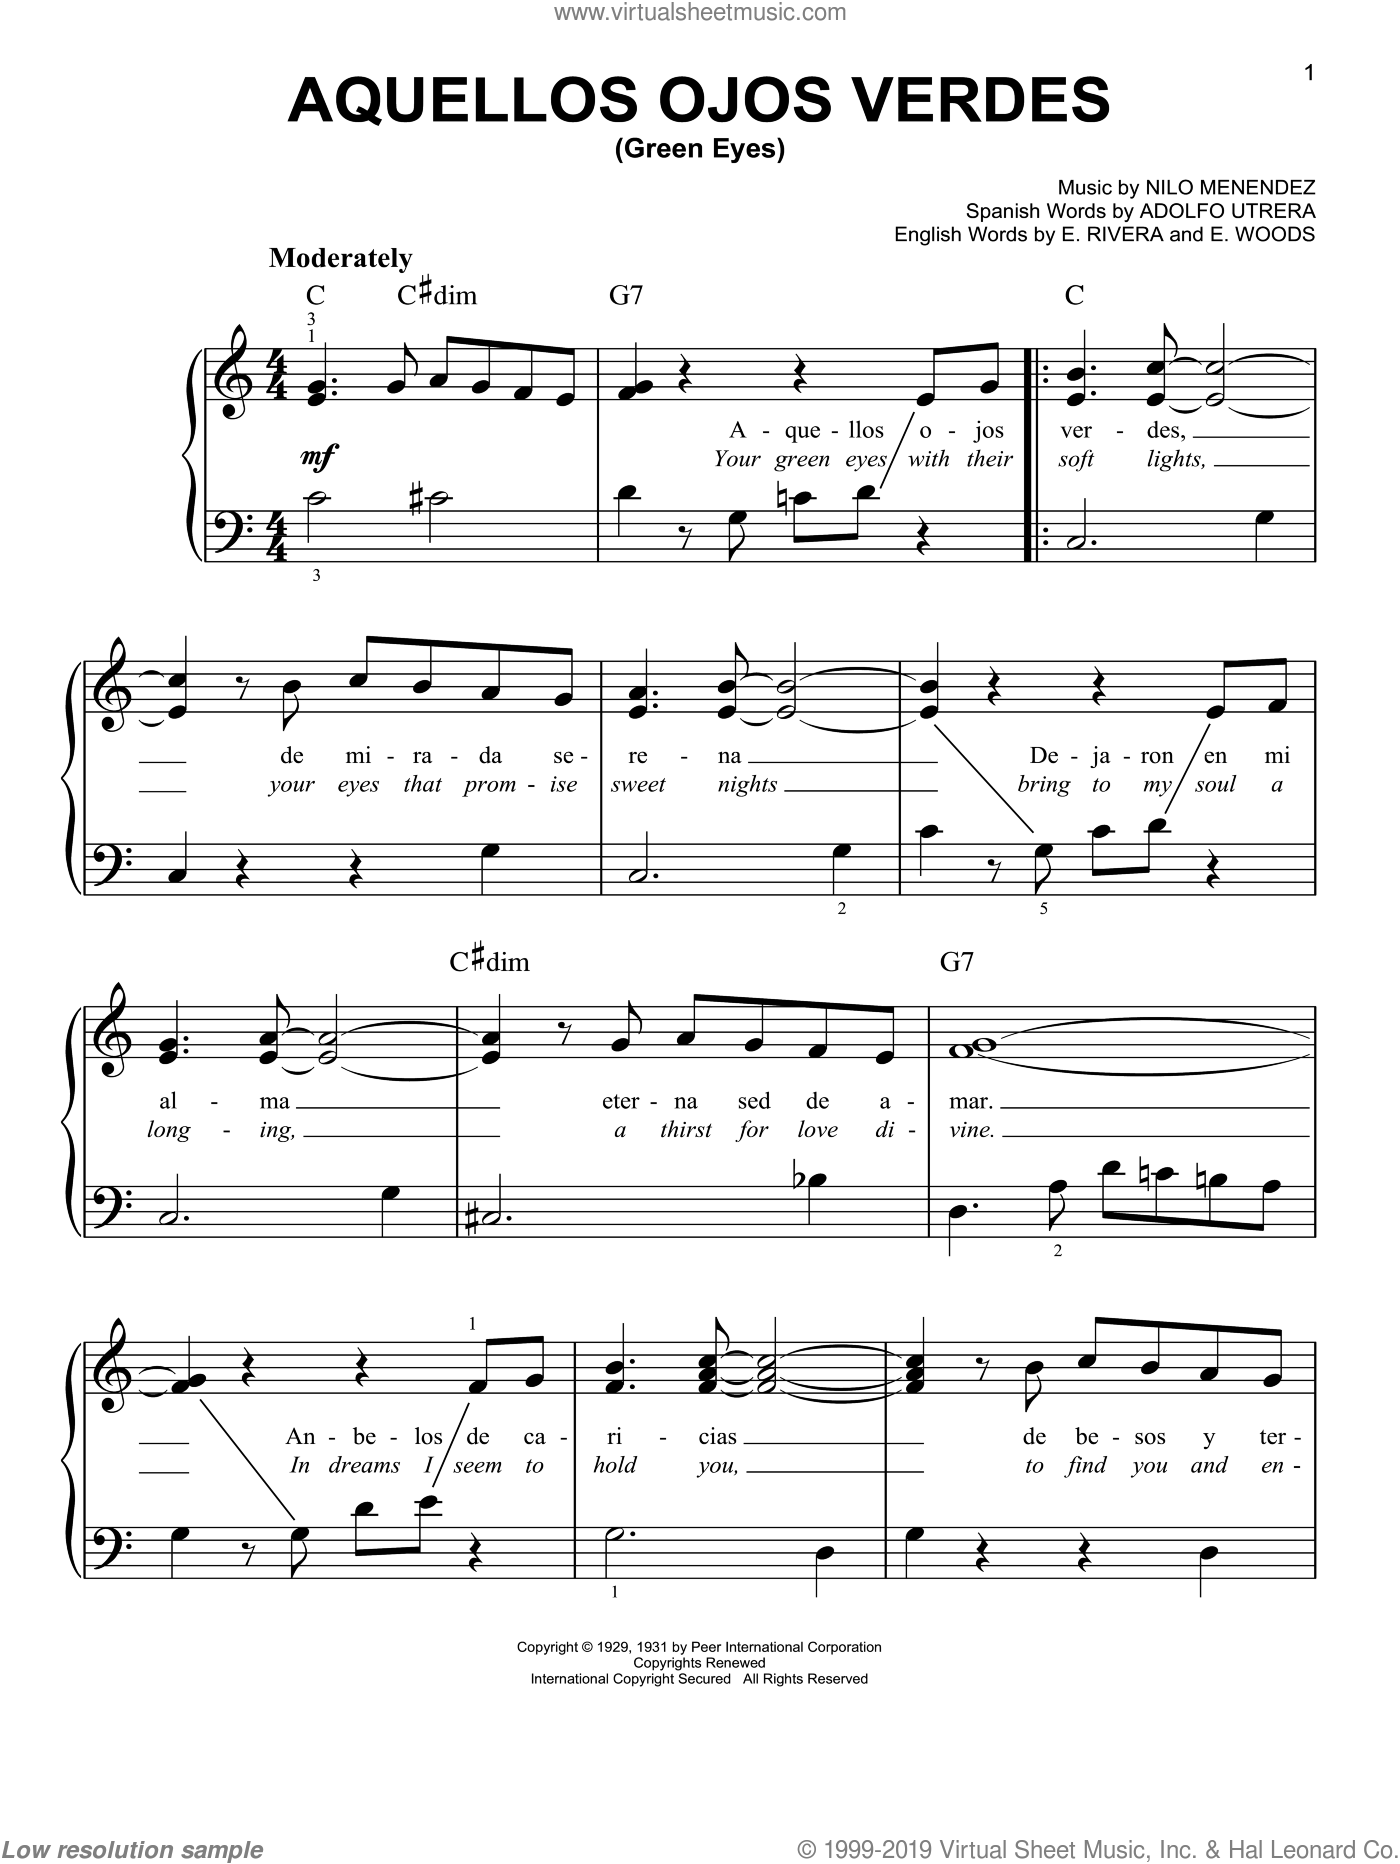 Aquellos Ojos Verdes (Green Eyes) sheet music for piano solo by E. Woods and Nilo Menendez